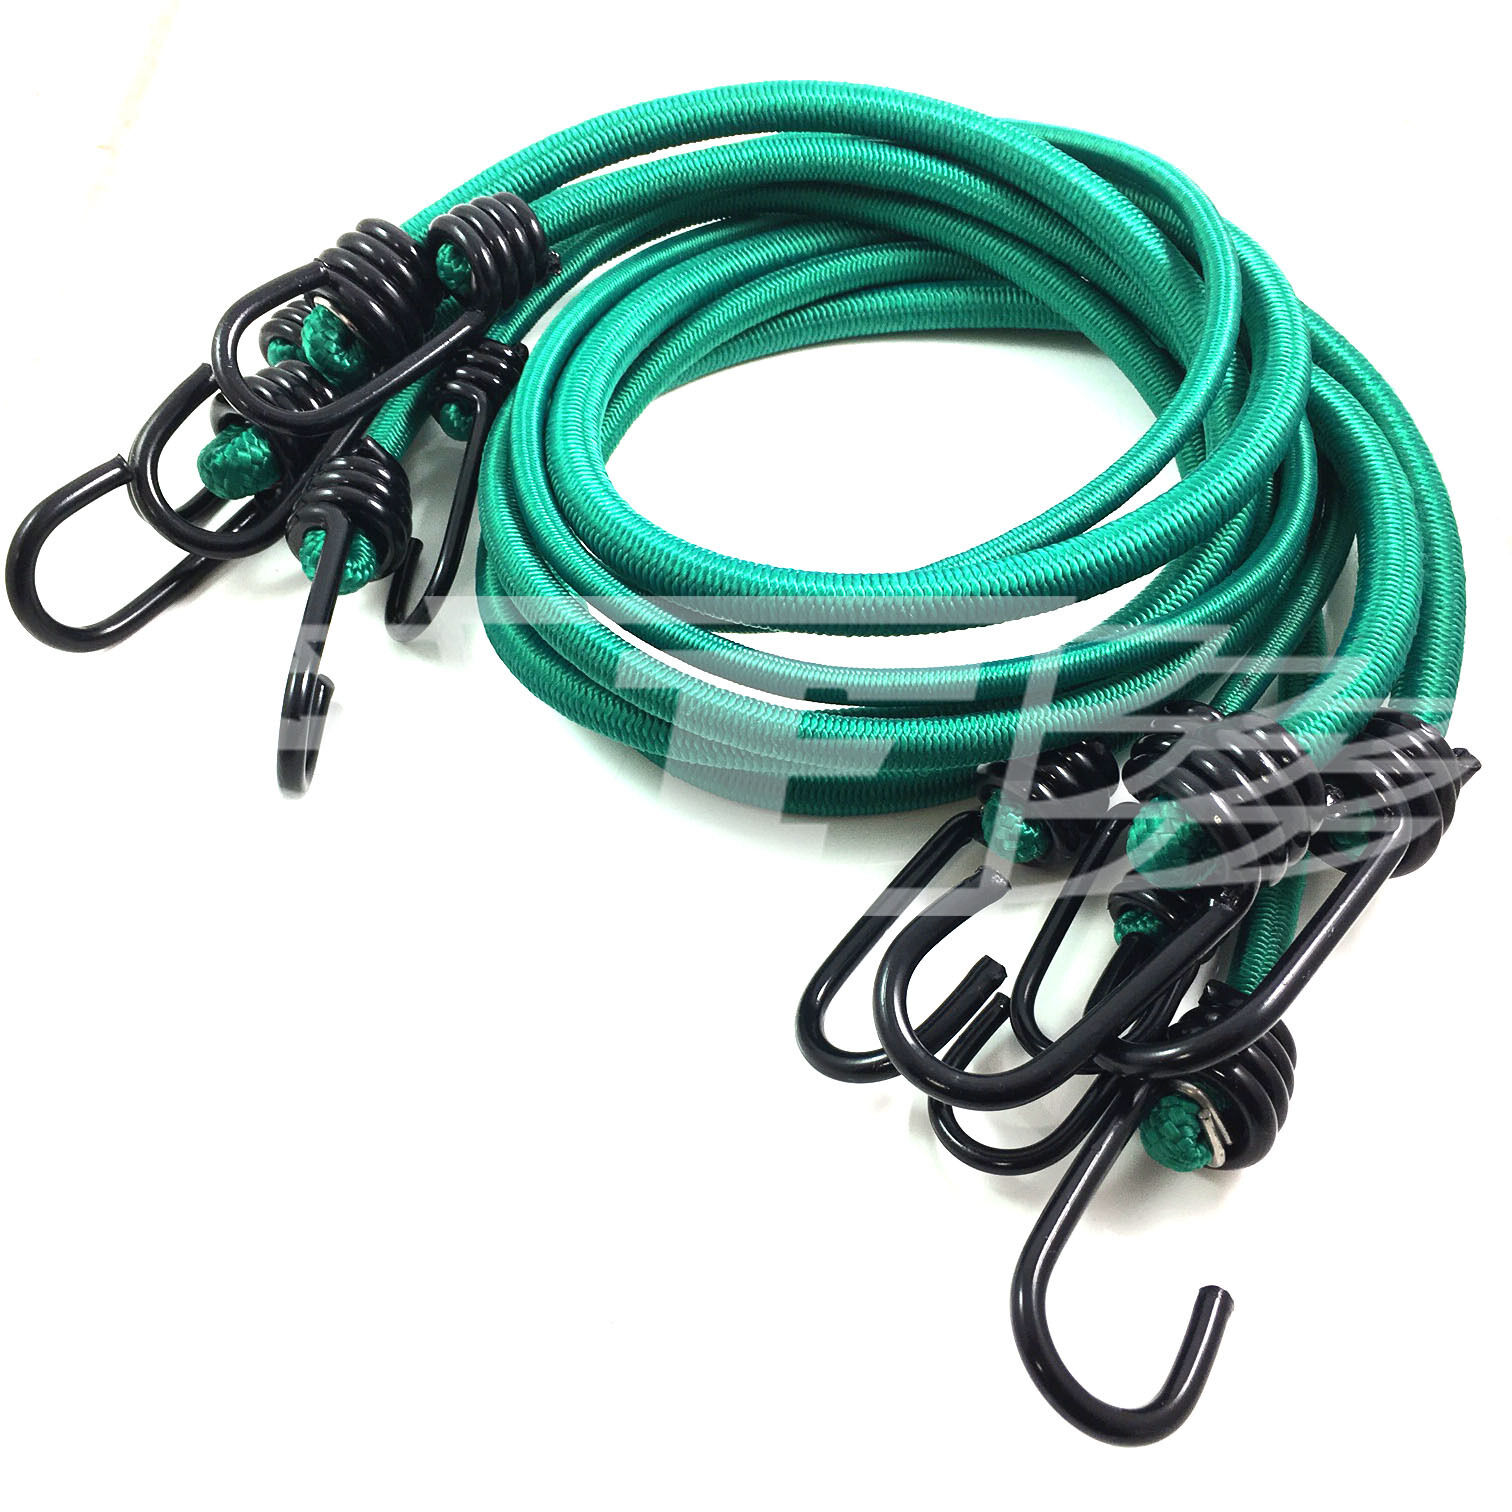 WHITE LUGGAGE ELASTICS BUNGEE STRAPS SHOCK CORD METAL SPIRAL HOOK ENDS ARMY